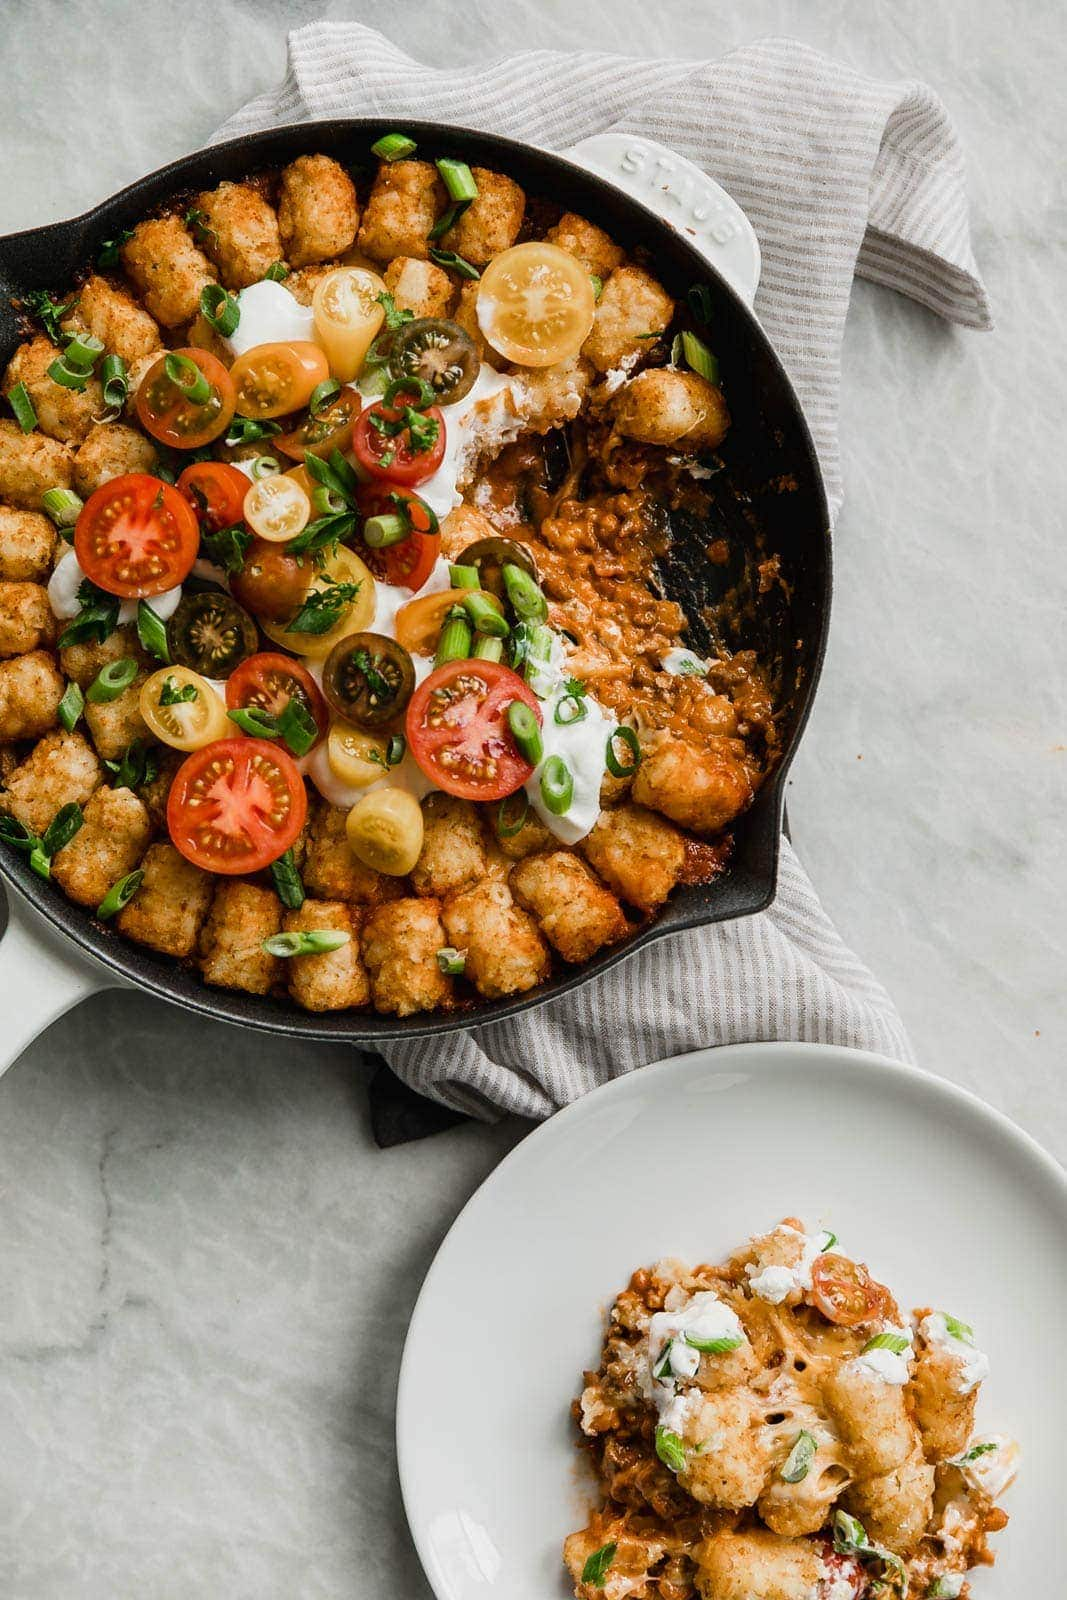 Cheeseburger Tater Tot Casserole: tastes just like a cheeseburger, topped with gooey cheese and a layer of crispy tater tots. Perfect for the Super bowl!